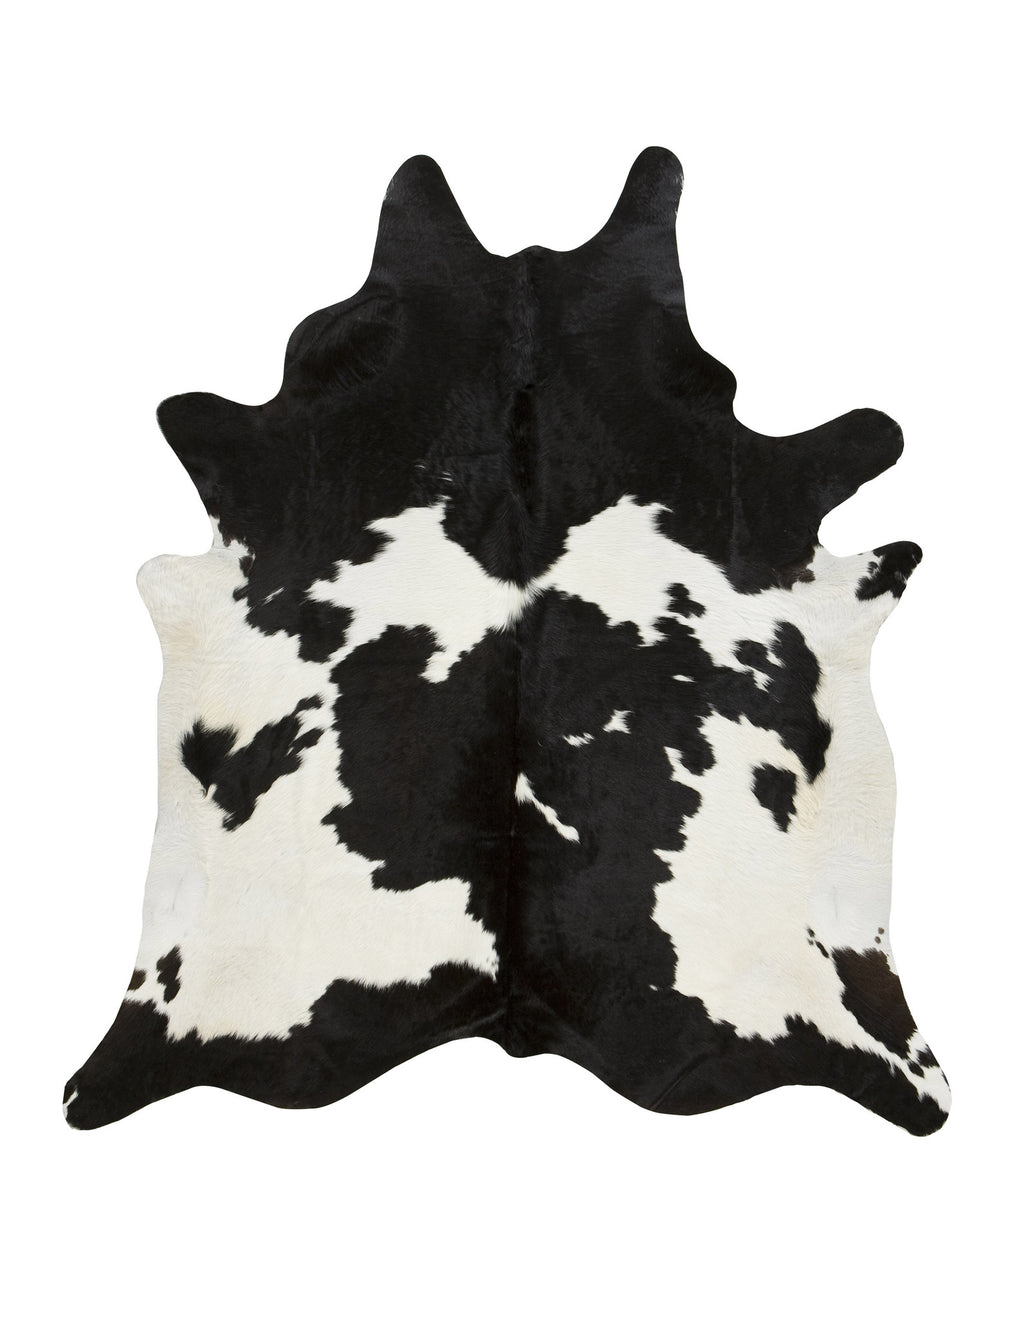 XL Black & White Cowhide Rug